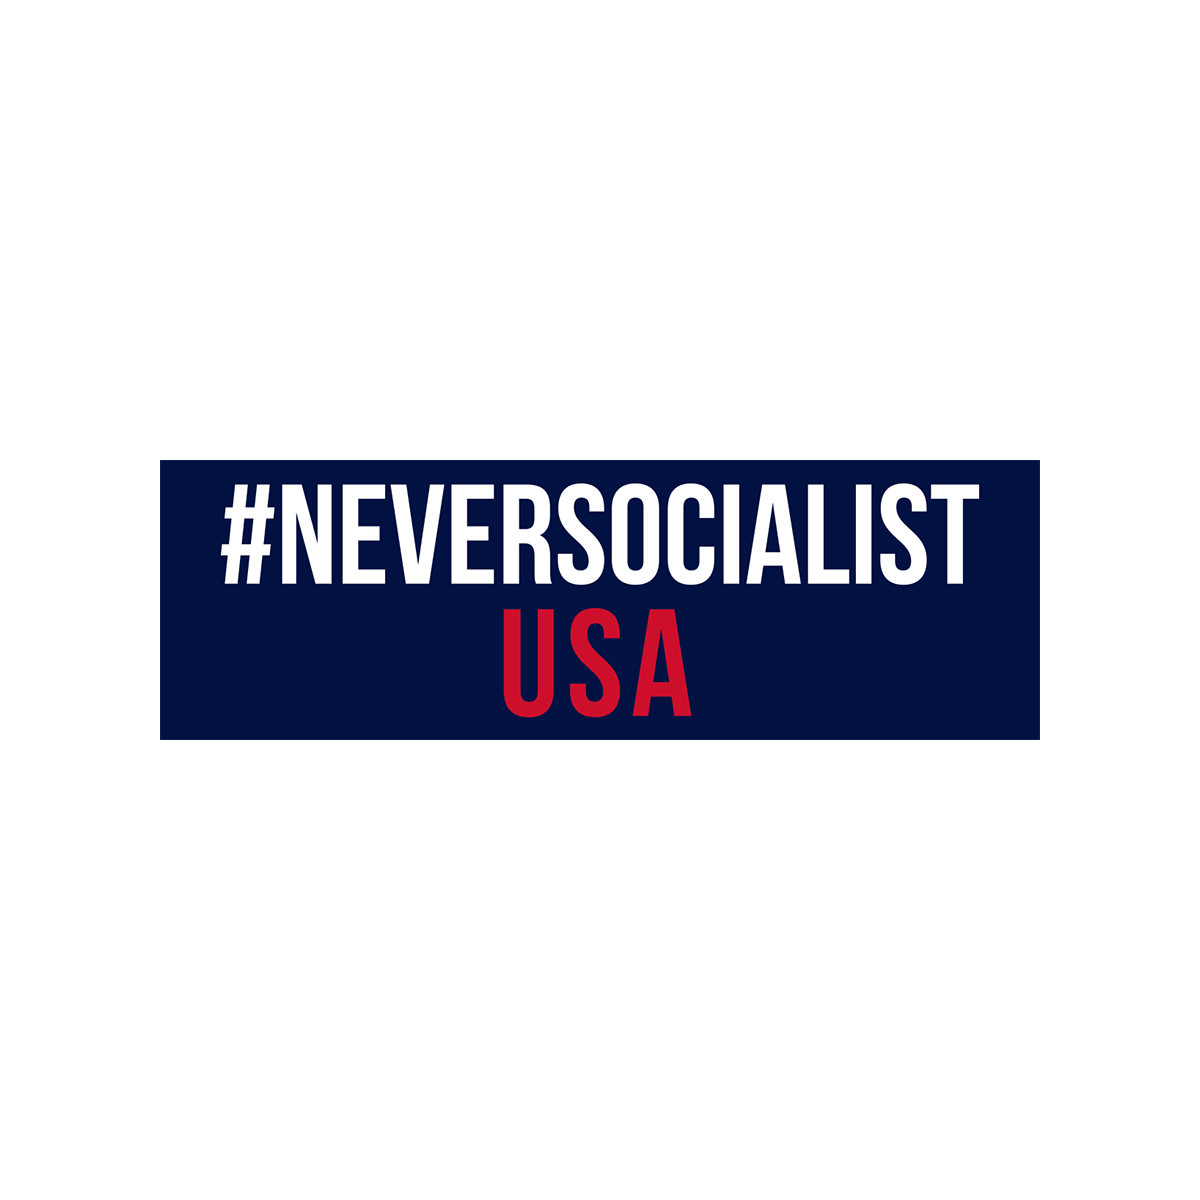 NeverSocialist USA Bumper Sticker Set of 2